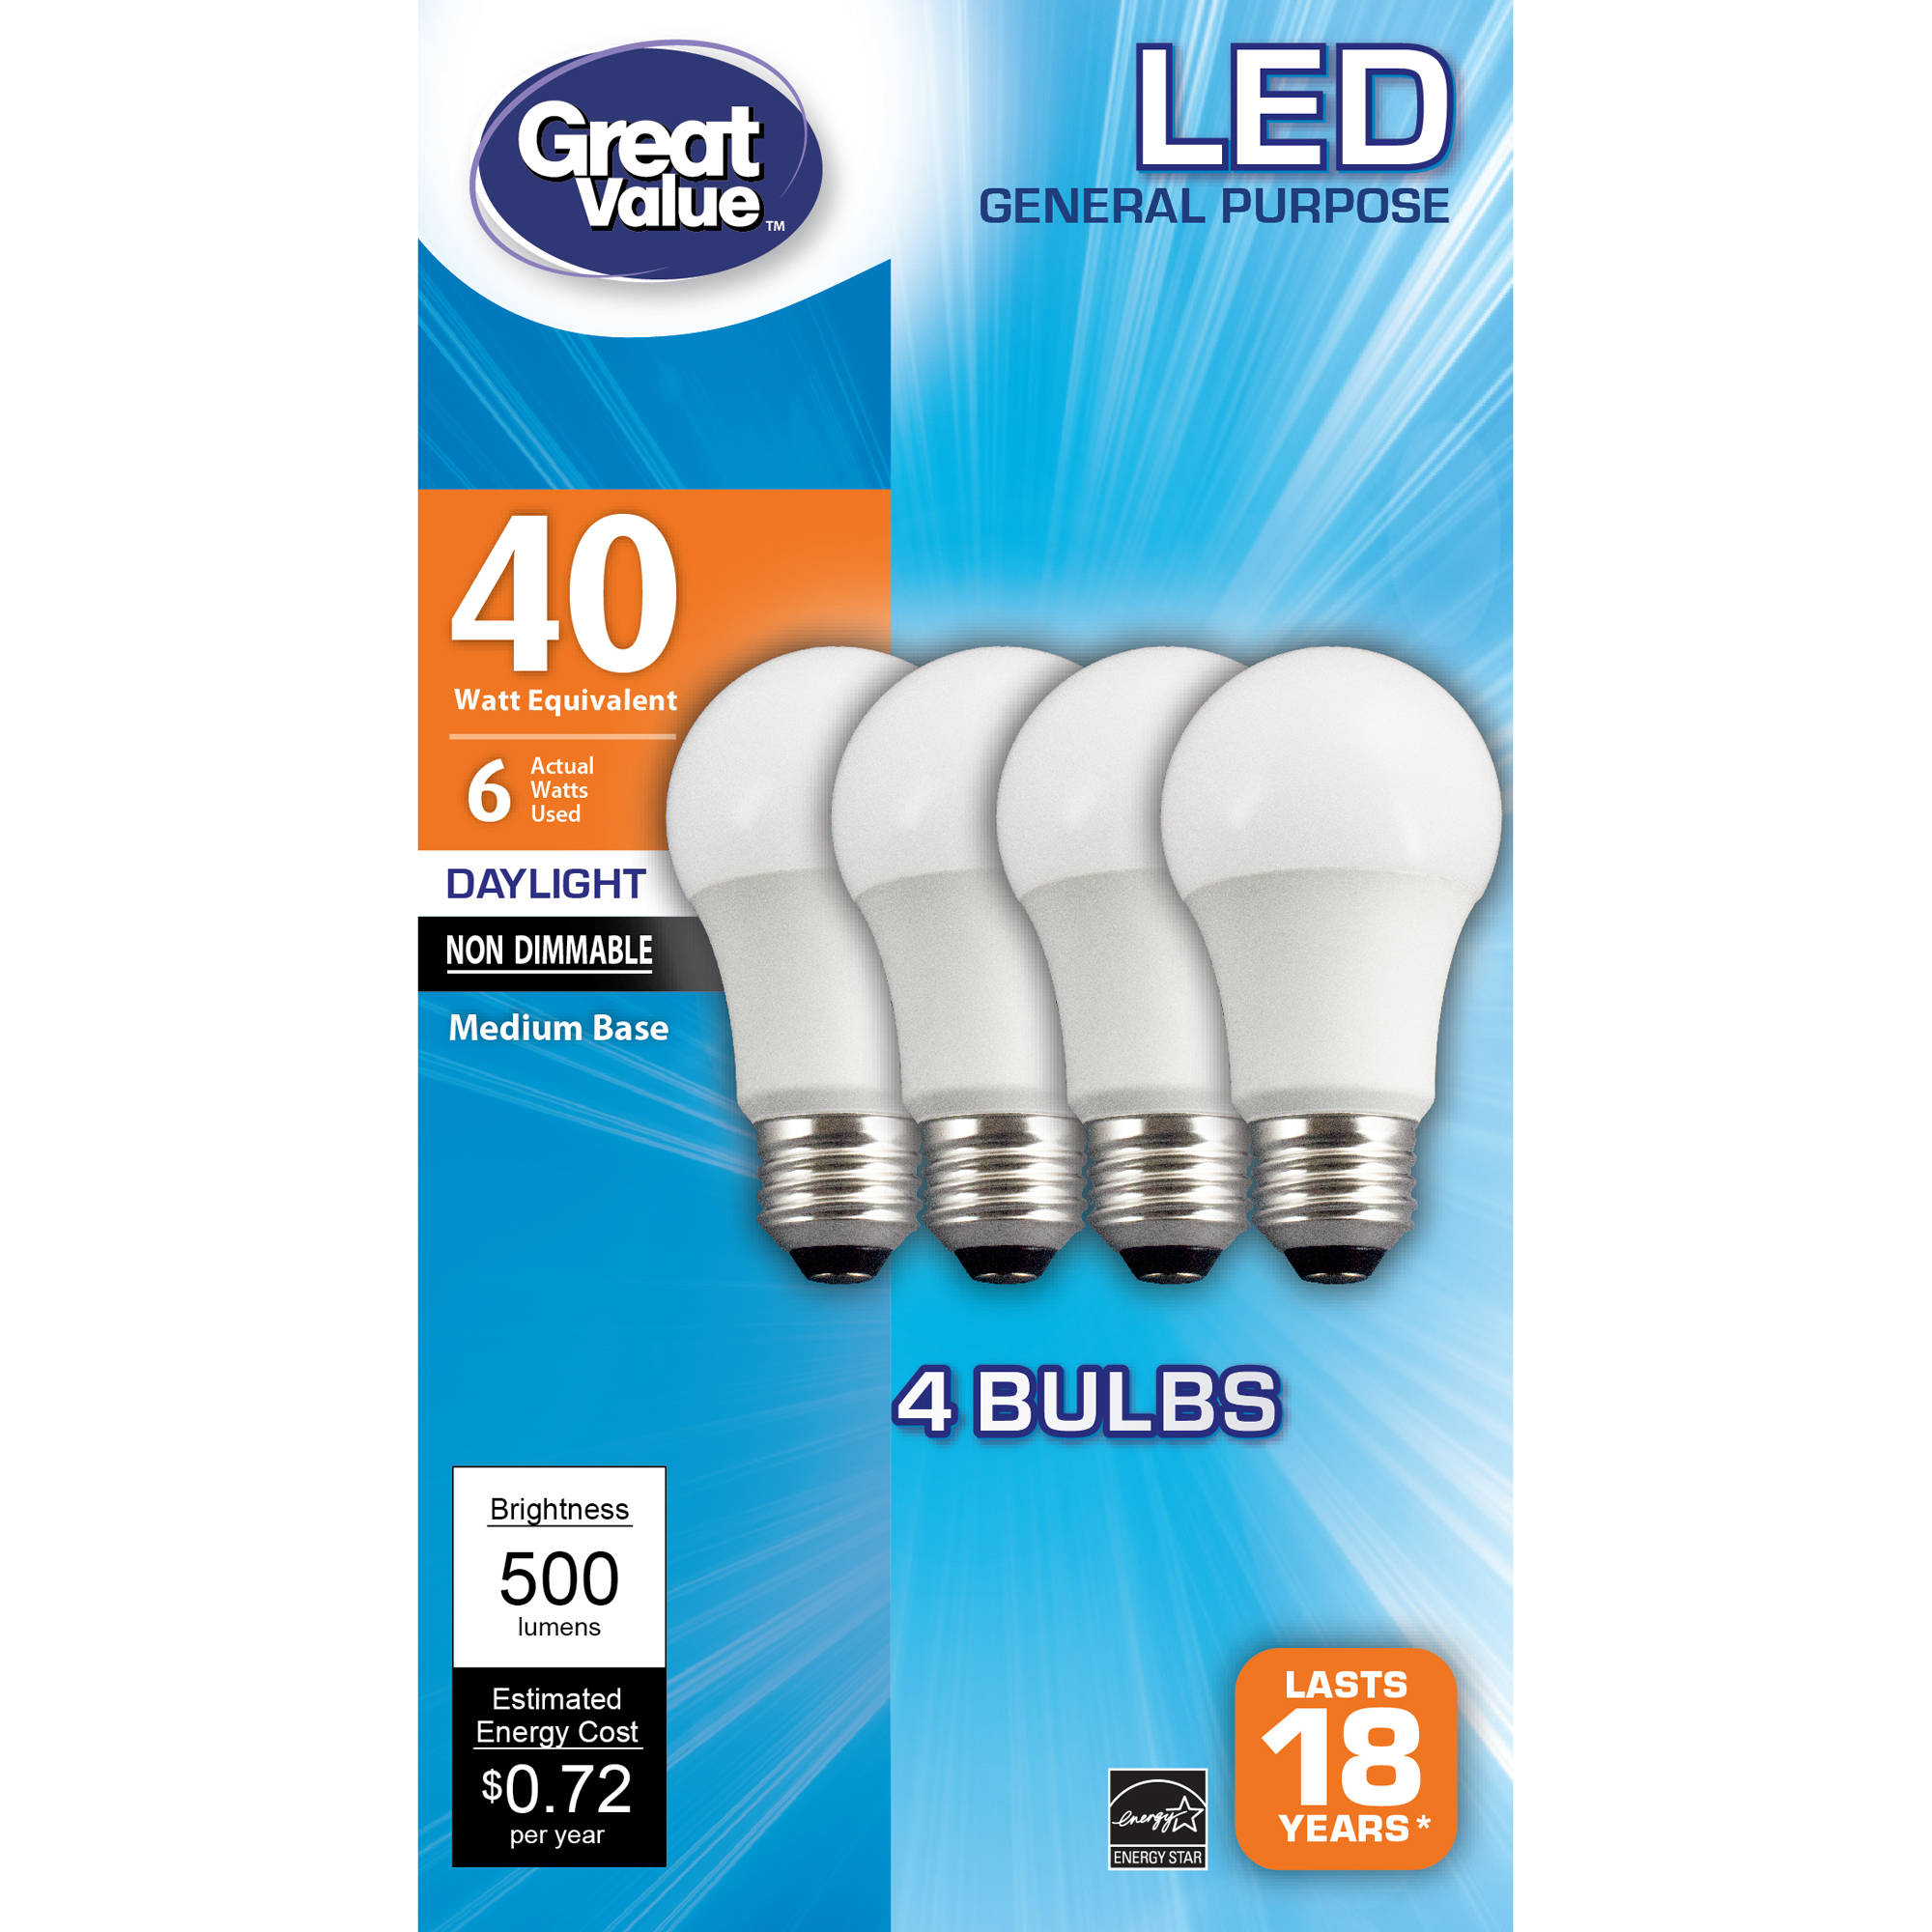 Great Value LED A19 (E26) Light Bulbs 6W (40W Equivalent), Daylight, 4-Pack